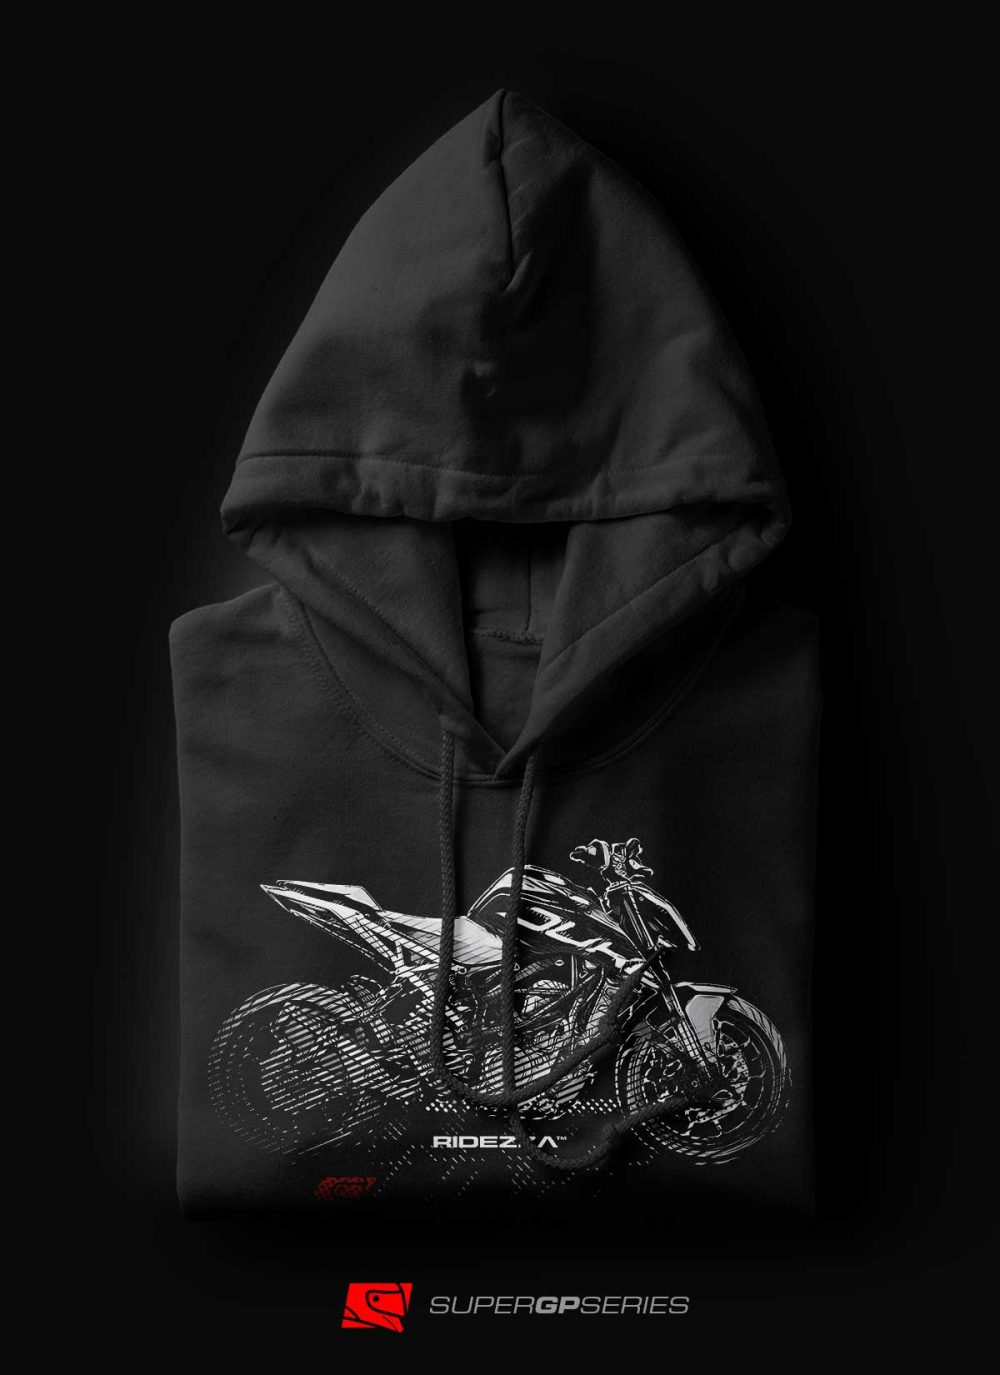 Ridezza 390 Duke SuperGP Series Hoodie